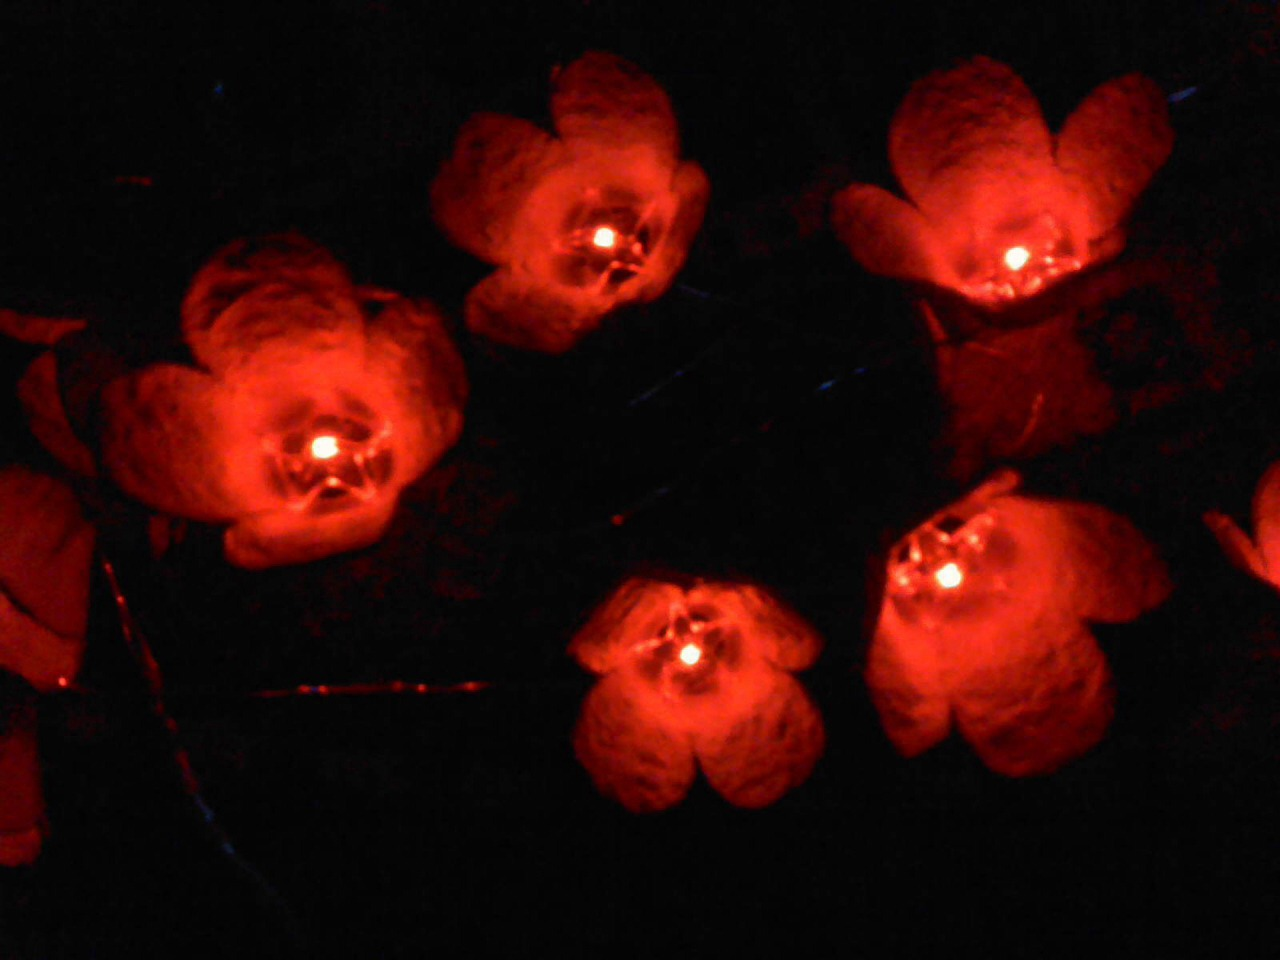 Diy Floral String Lights : Diy Flower String Lights From Egg Cartons???? Trusper